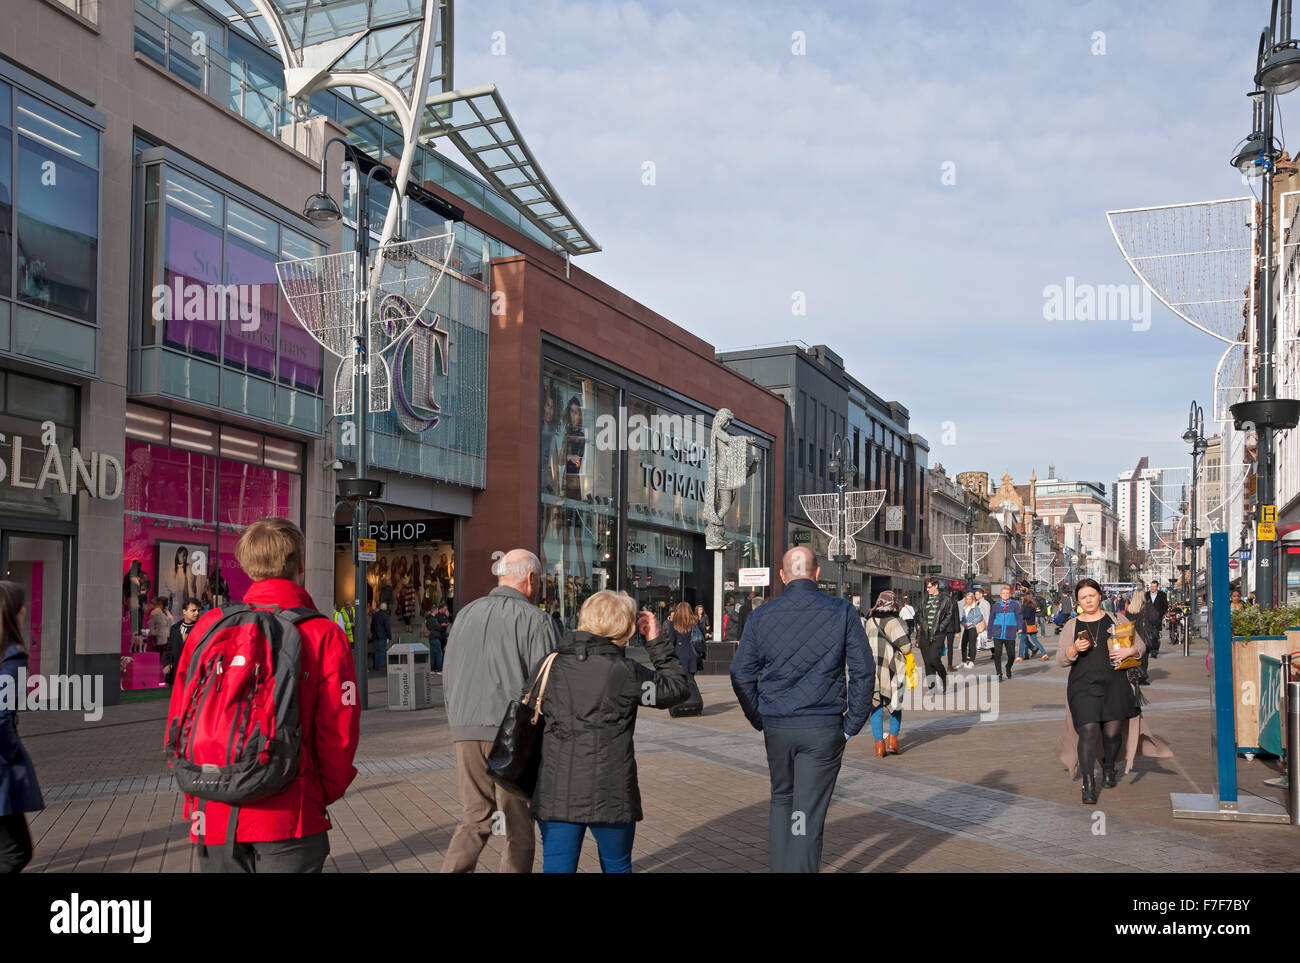 Briggate entrance to Trinity Leeds shopping centre Leeds West Yorkshire England UK United Kingdom GB Great Britain - Stock Image